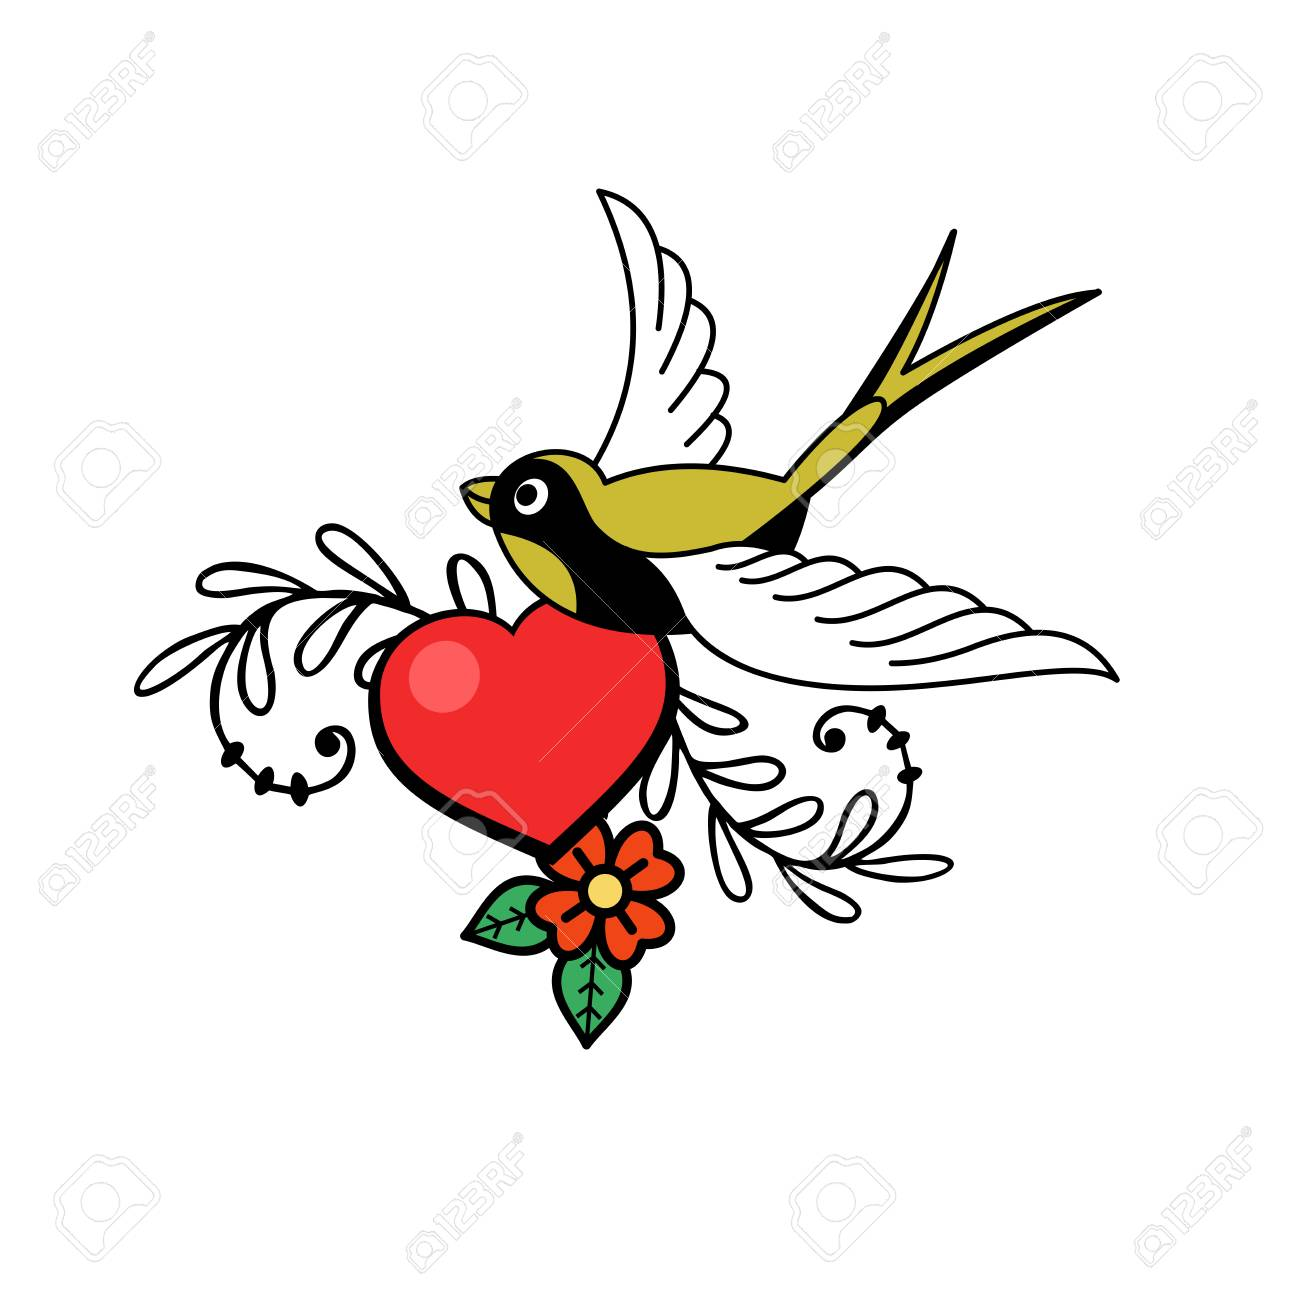 A Symbol Of Love Heart And Bird Vector Illustration Isolated